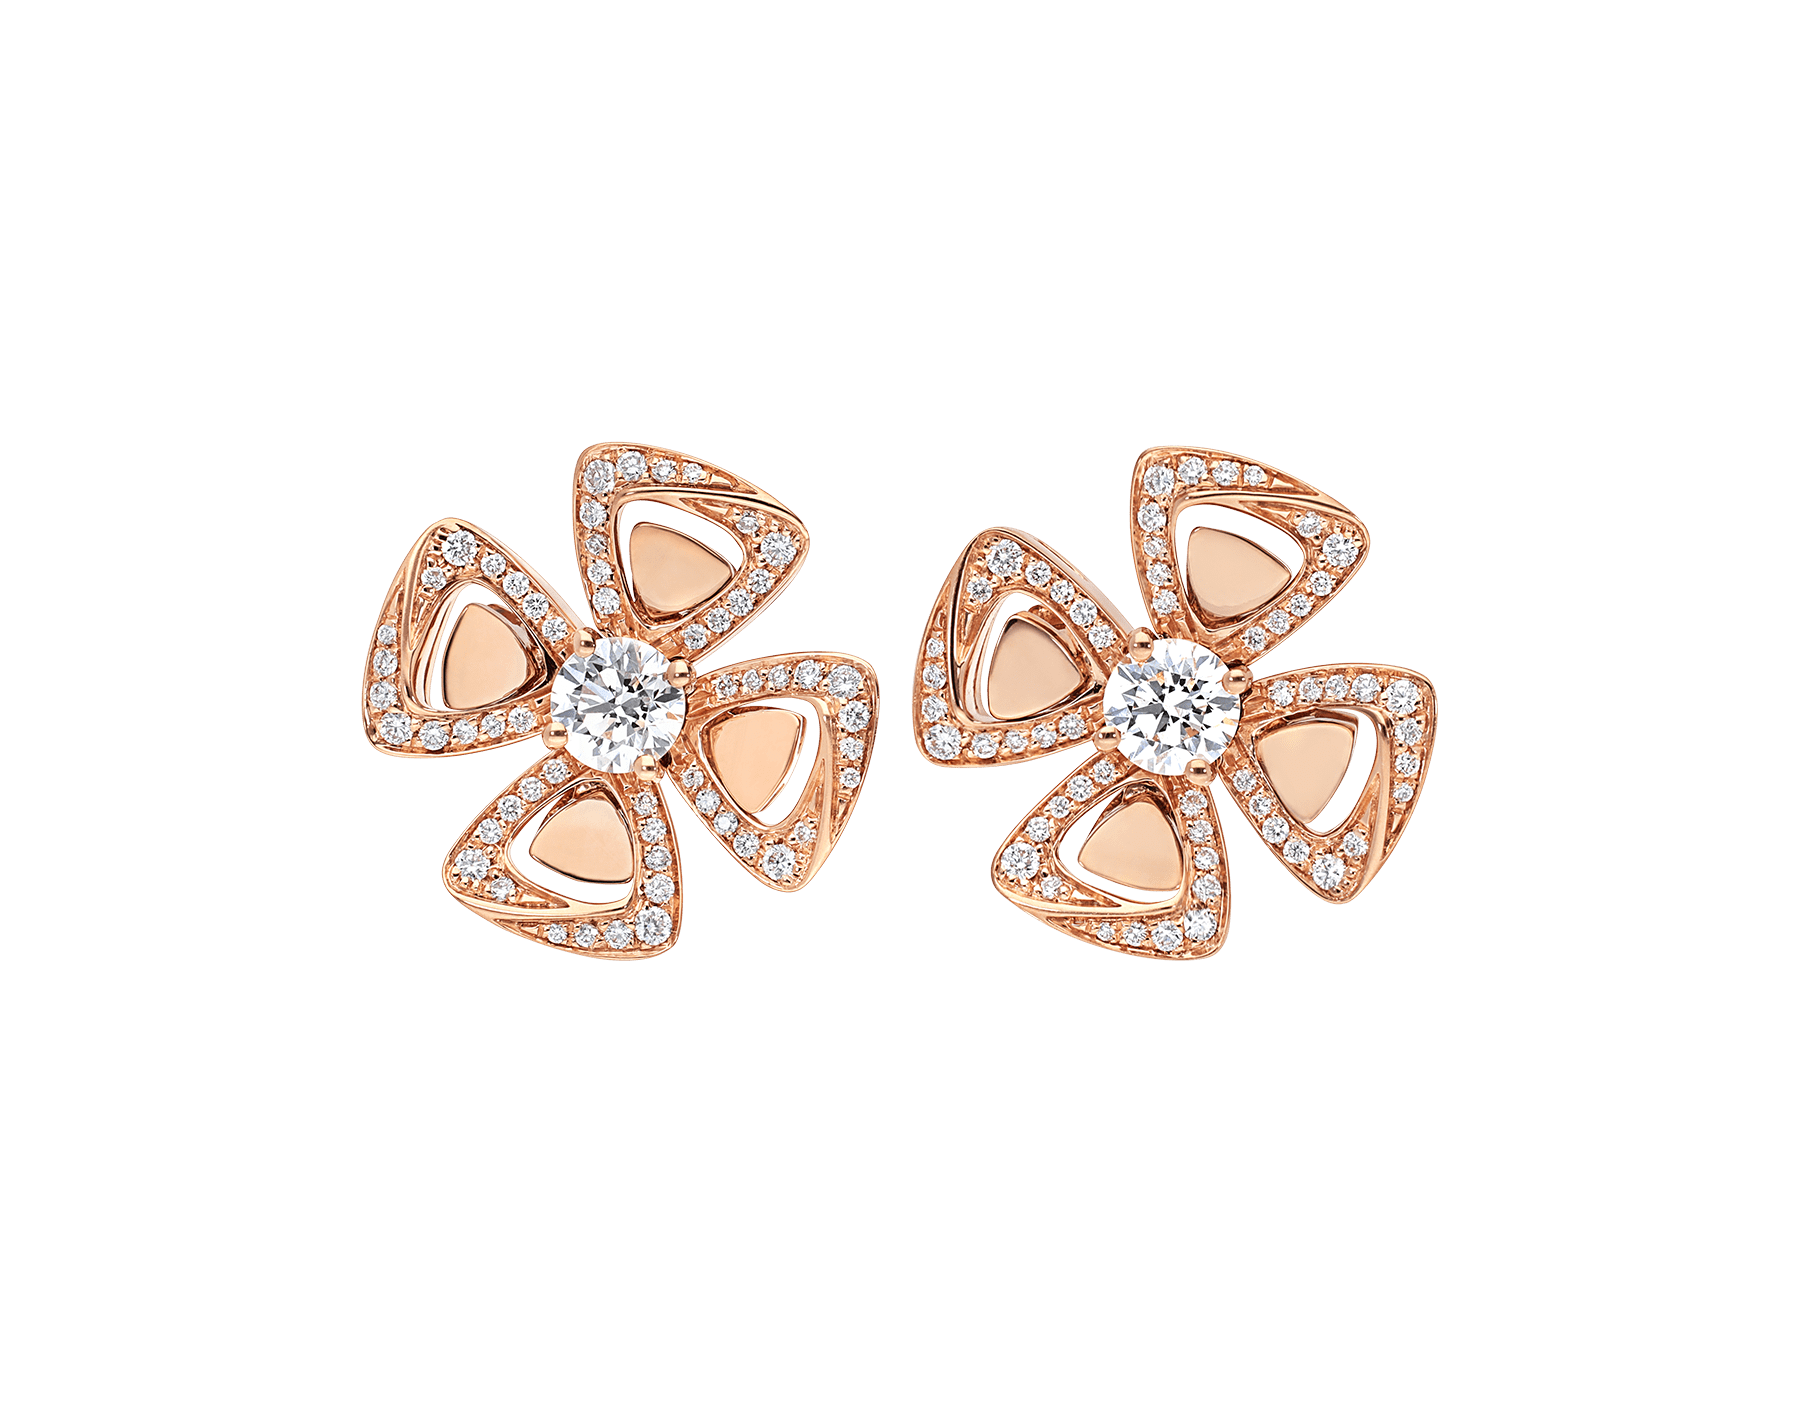 Fiorever 18 kt rose gold earrings set with two central diamonds (0.20 ct each) and pavé diamonds (0.25 ct) 356280 image 1